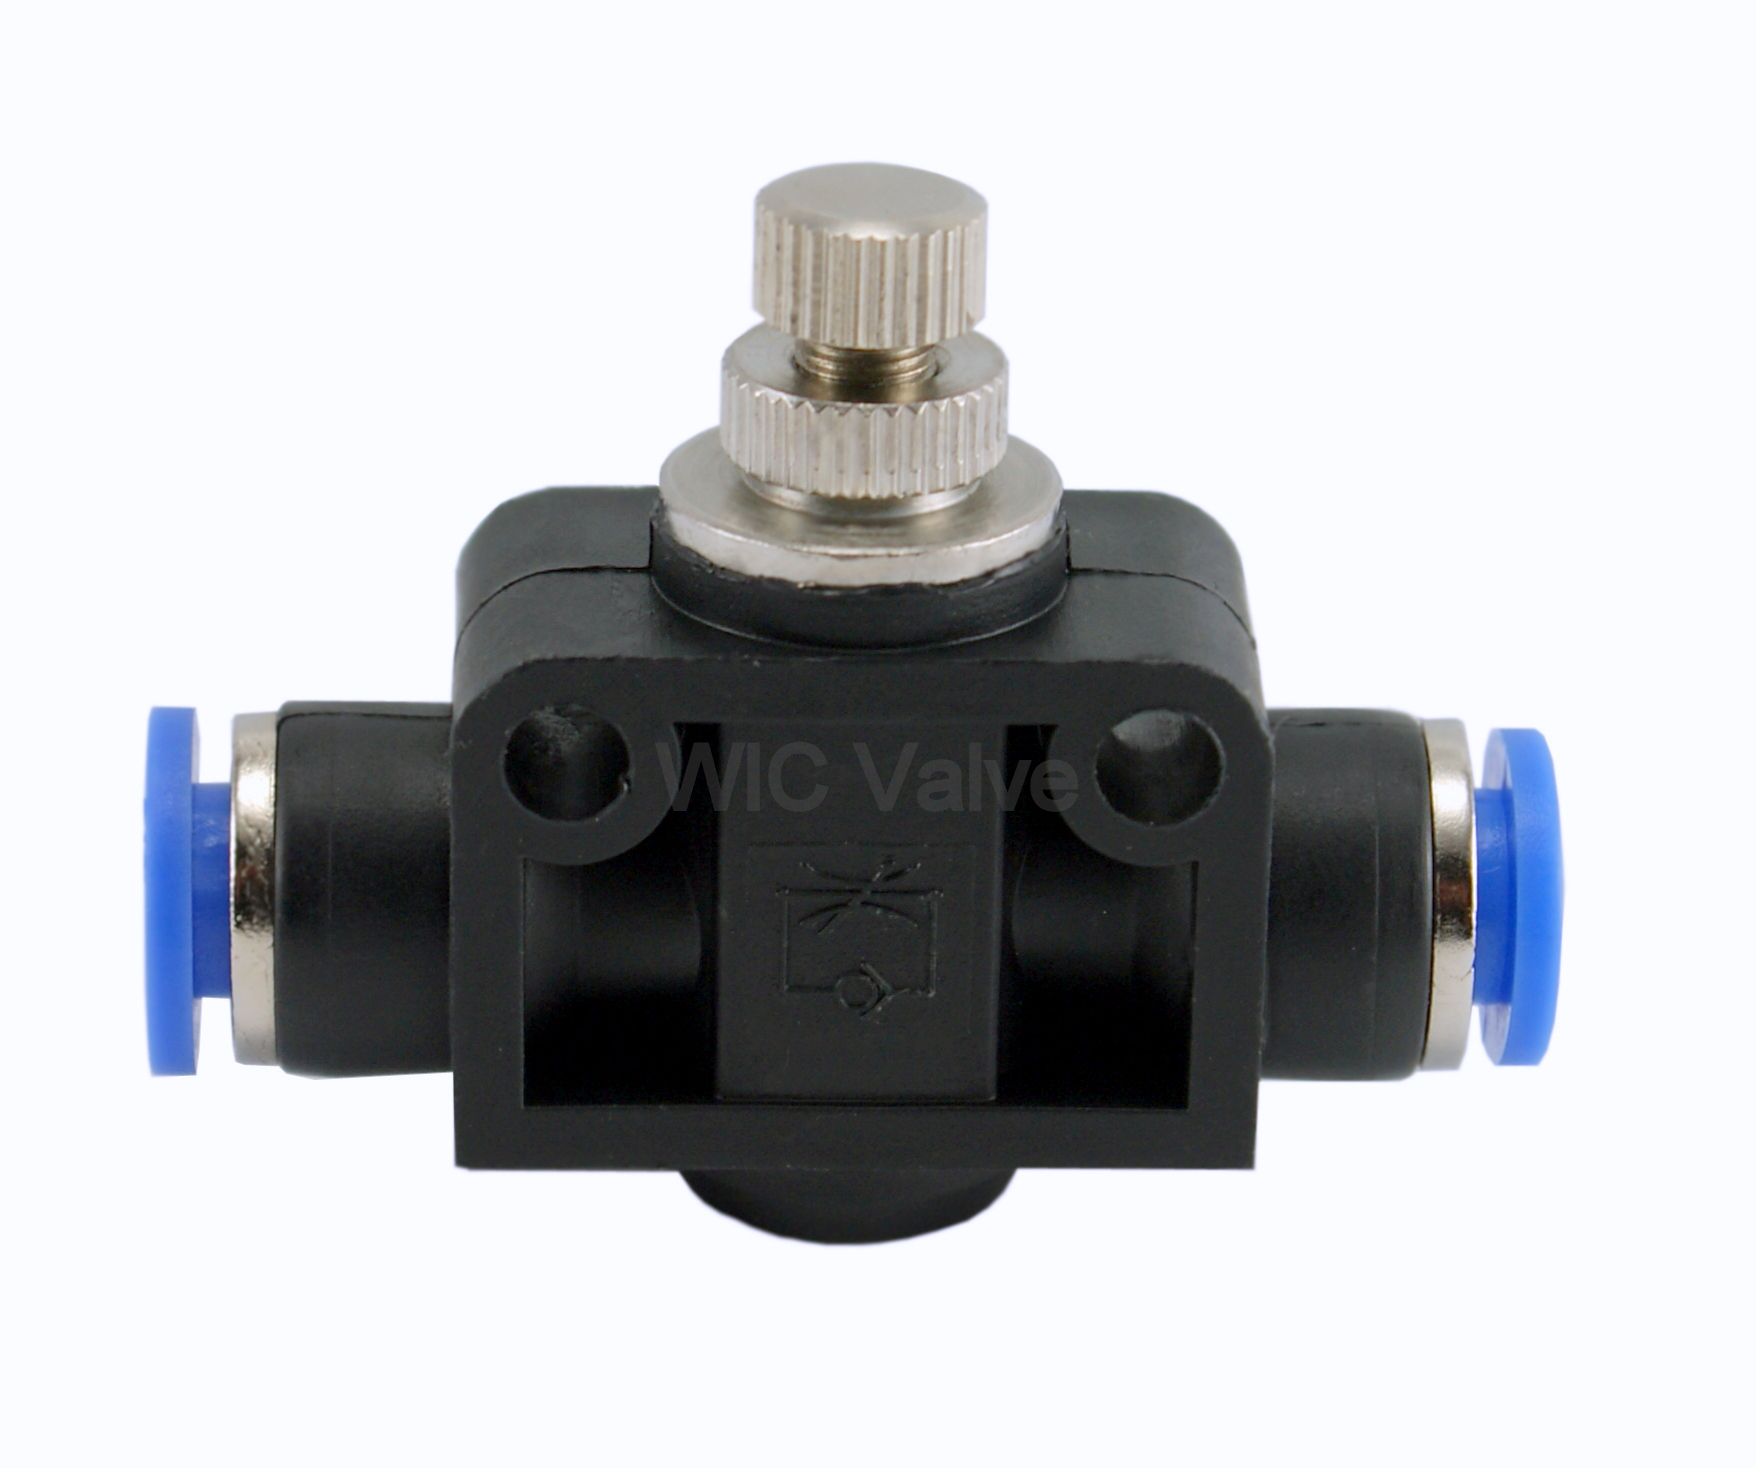 Taco Zone Valve Wiring Diagram 573 in addition Zone Valve Repairs likewise Taco 571 Wiring Diagram moreover Ecobee3 Wiring Diagram also Taco Zone Valve Wiring. on taco 571 zone valve wiring